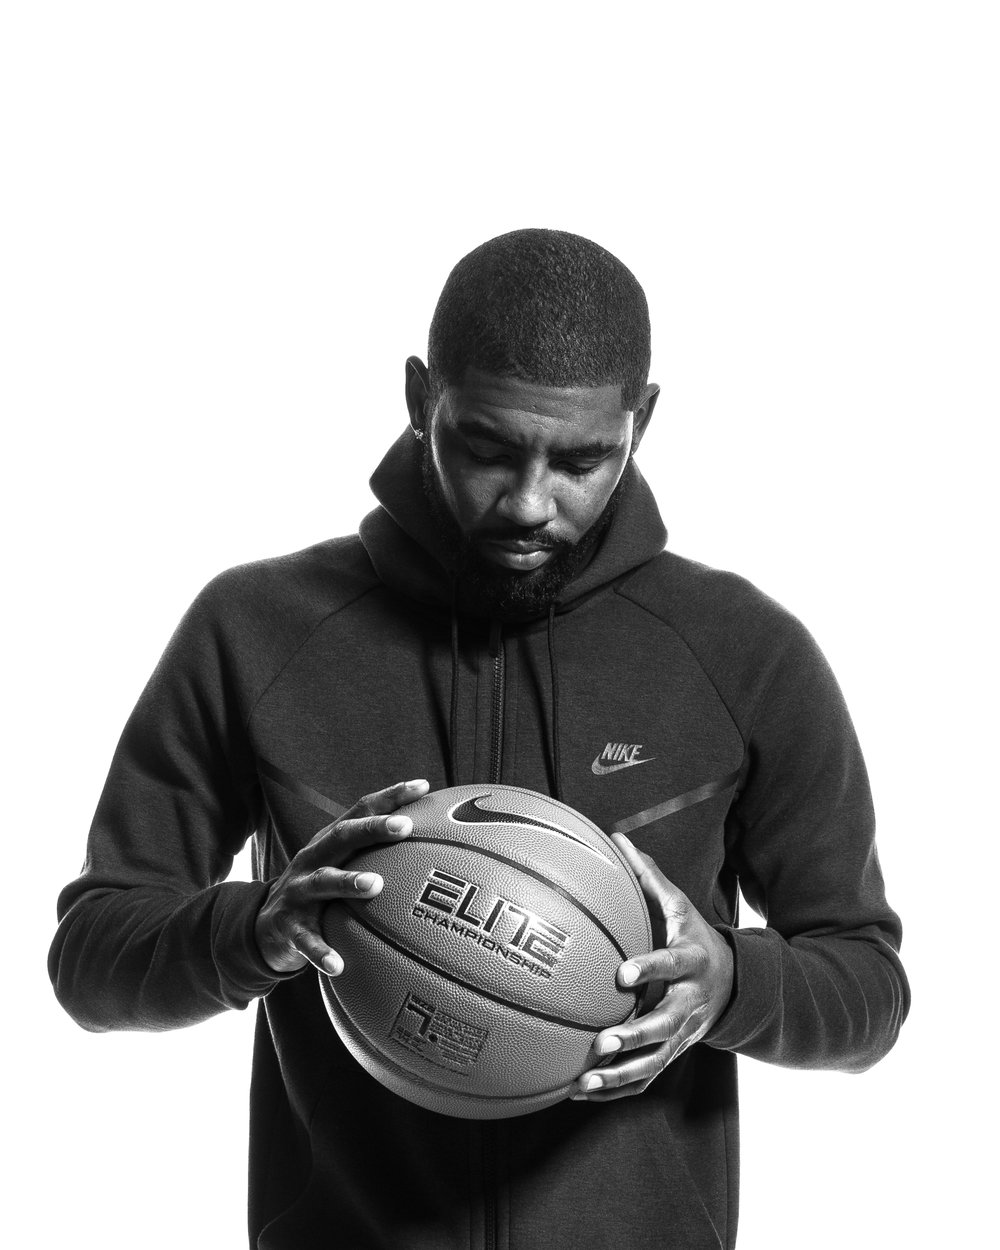 CLEV_FootLocker_Kyrie_NOV_6_160790.jpg